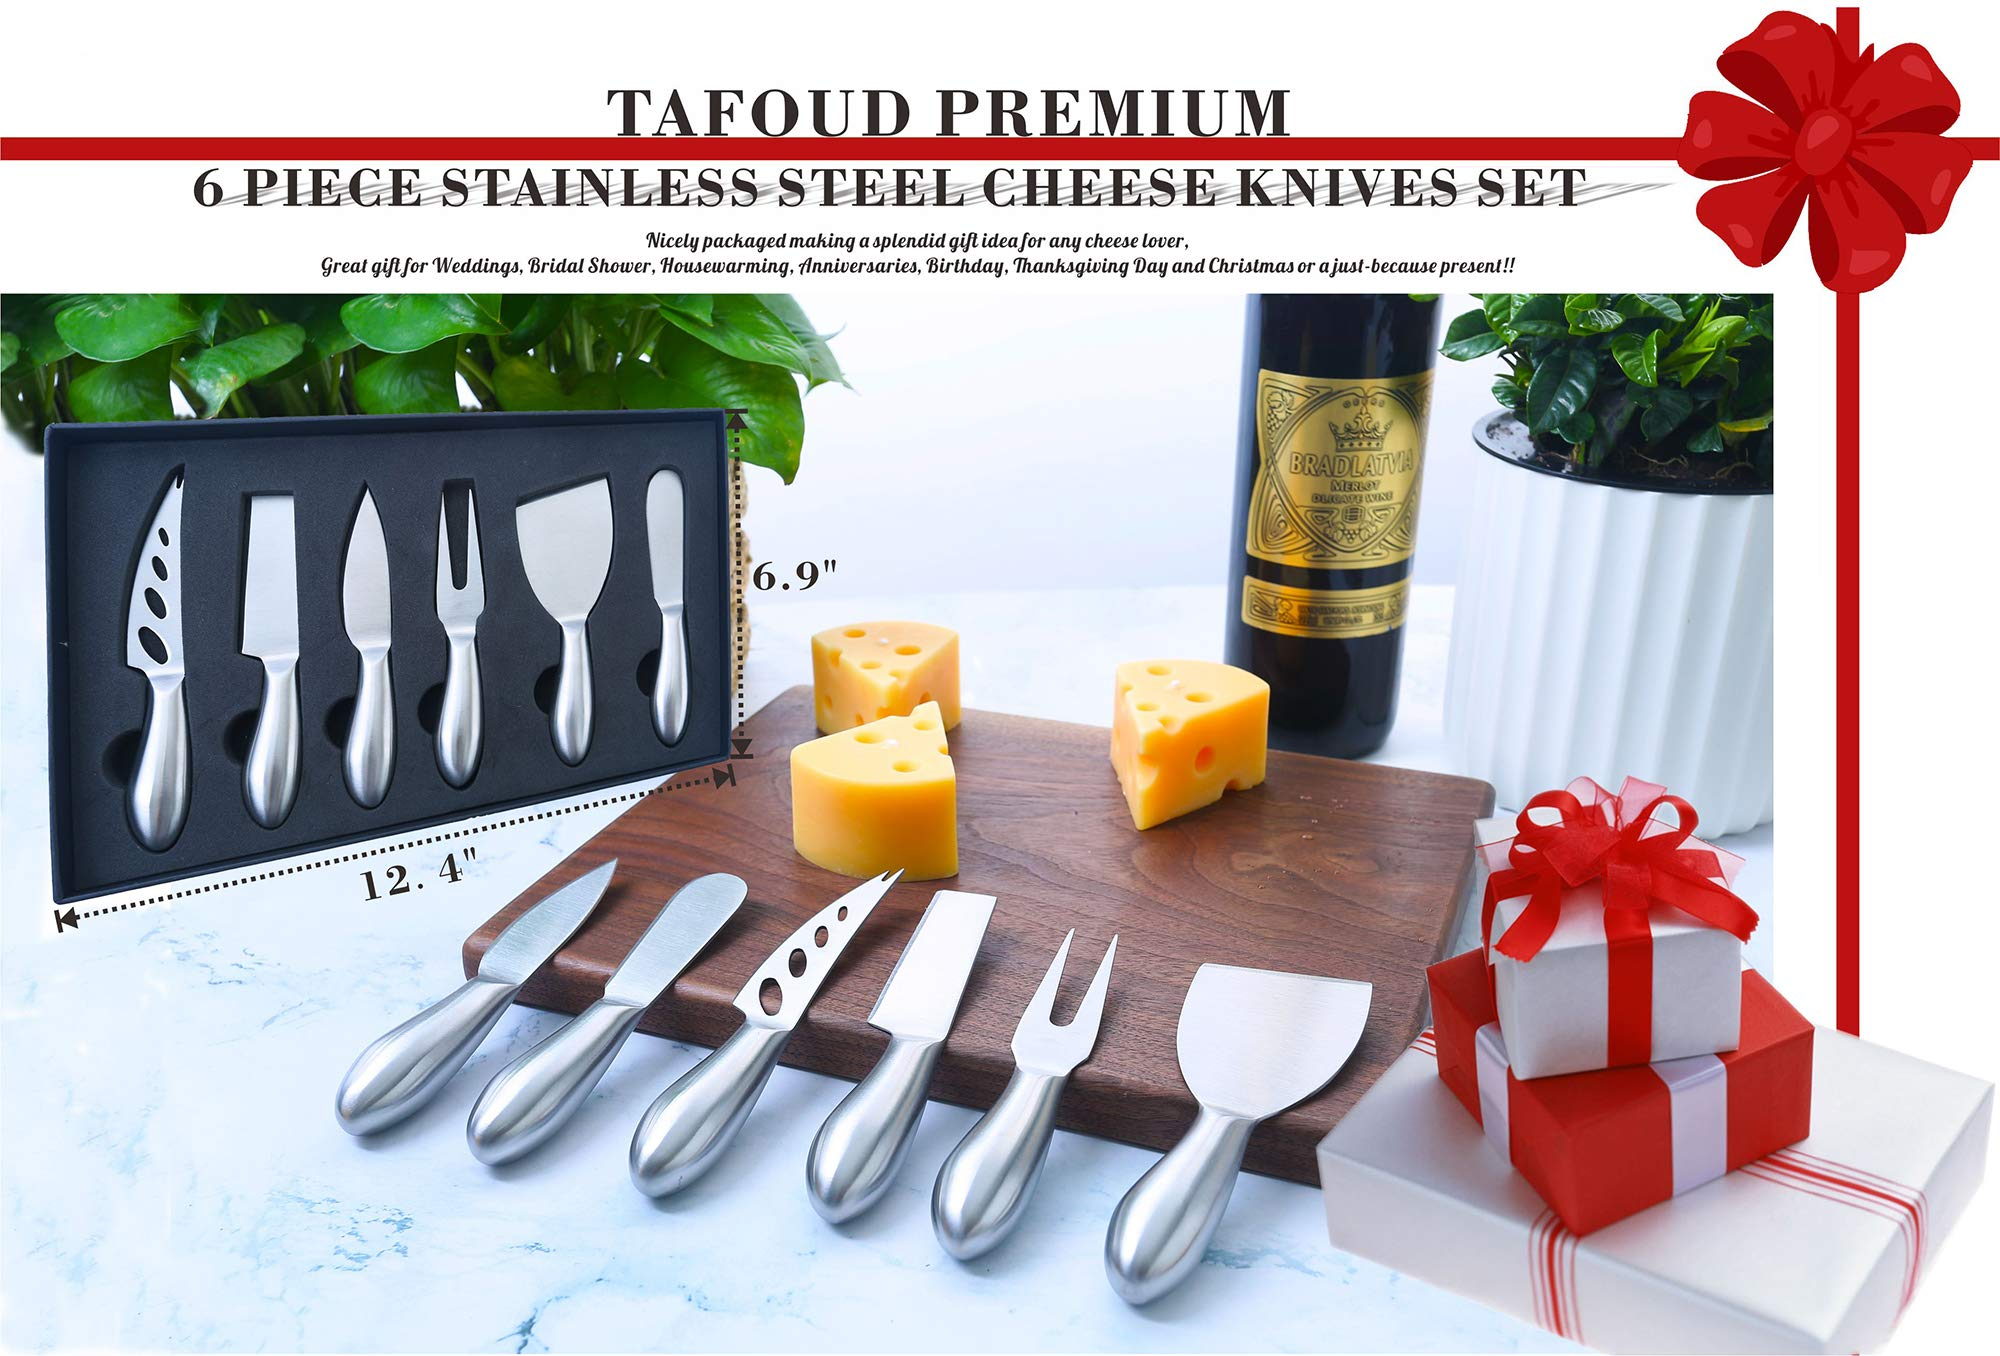 Tafond Premium 6 Piece Stainless Steel Cheese knives Set with Gift Box Nice Weight and Density Cheese Serving Knives Perfect Gifts for Christmas Birthday Party Wedding Anniversary